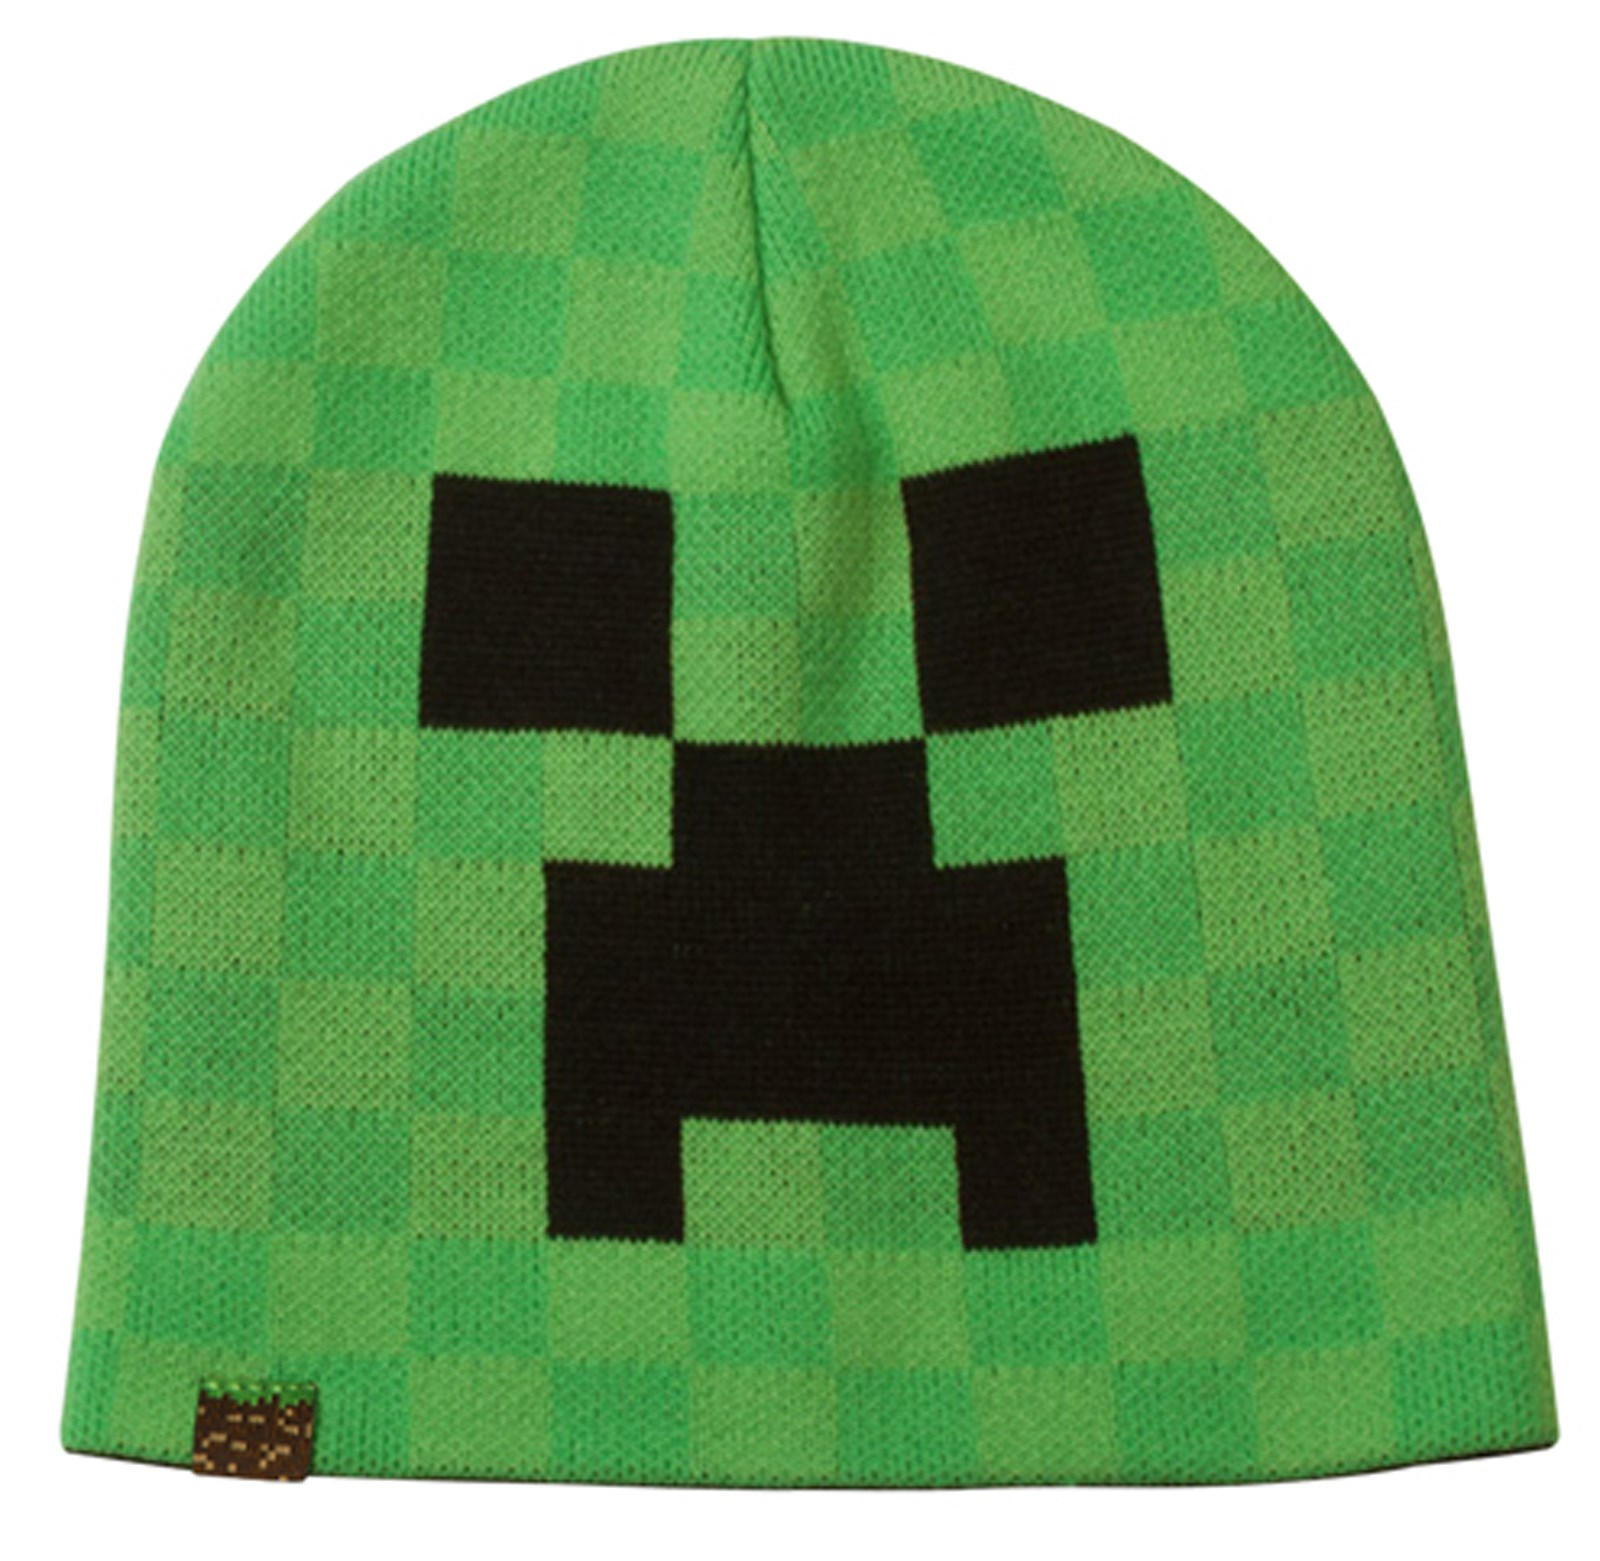 Minecraft Creeper Face Beanie Adult Hat